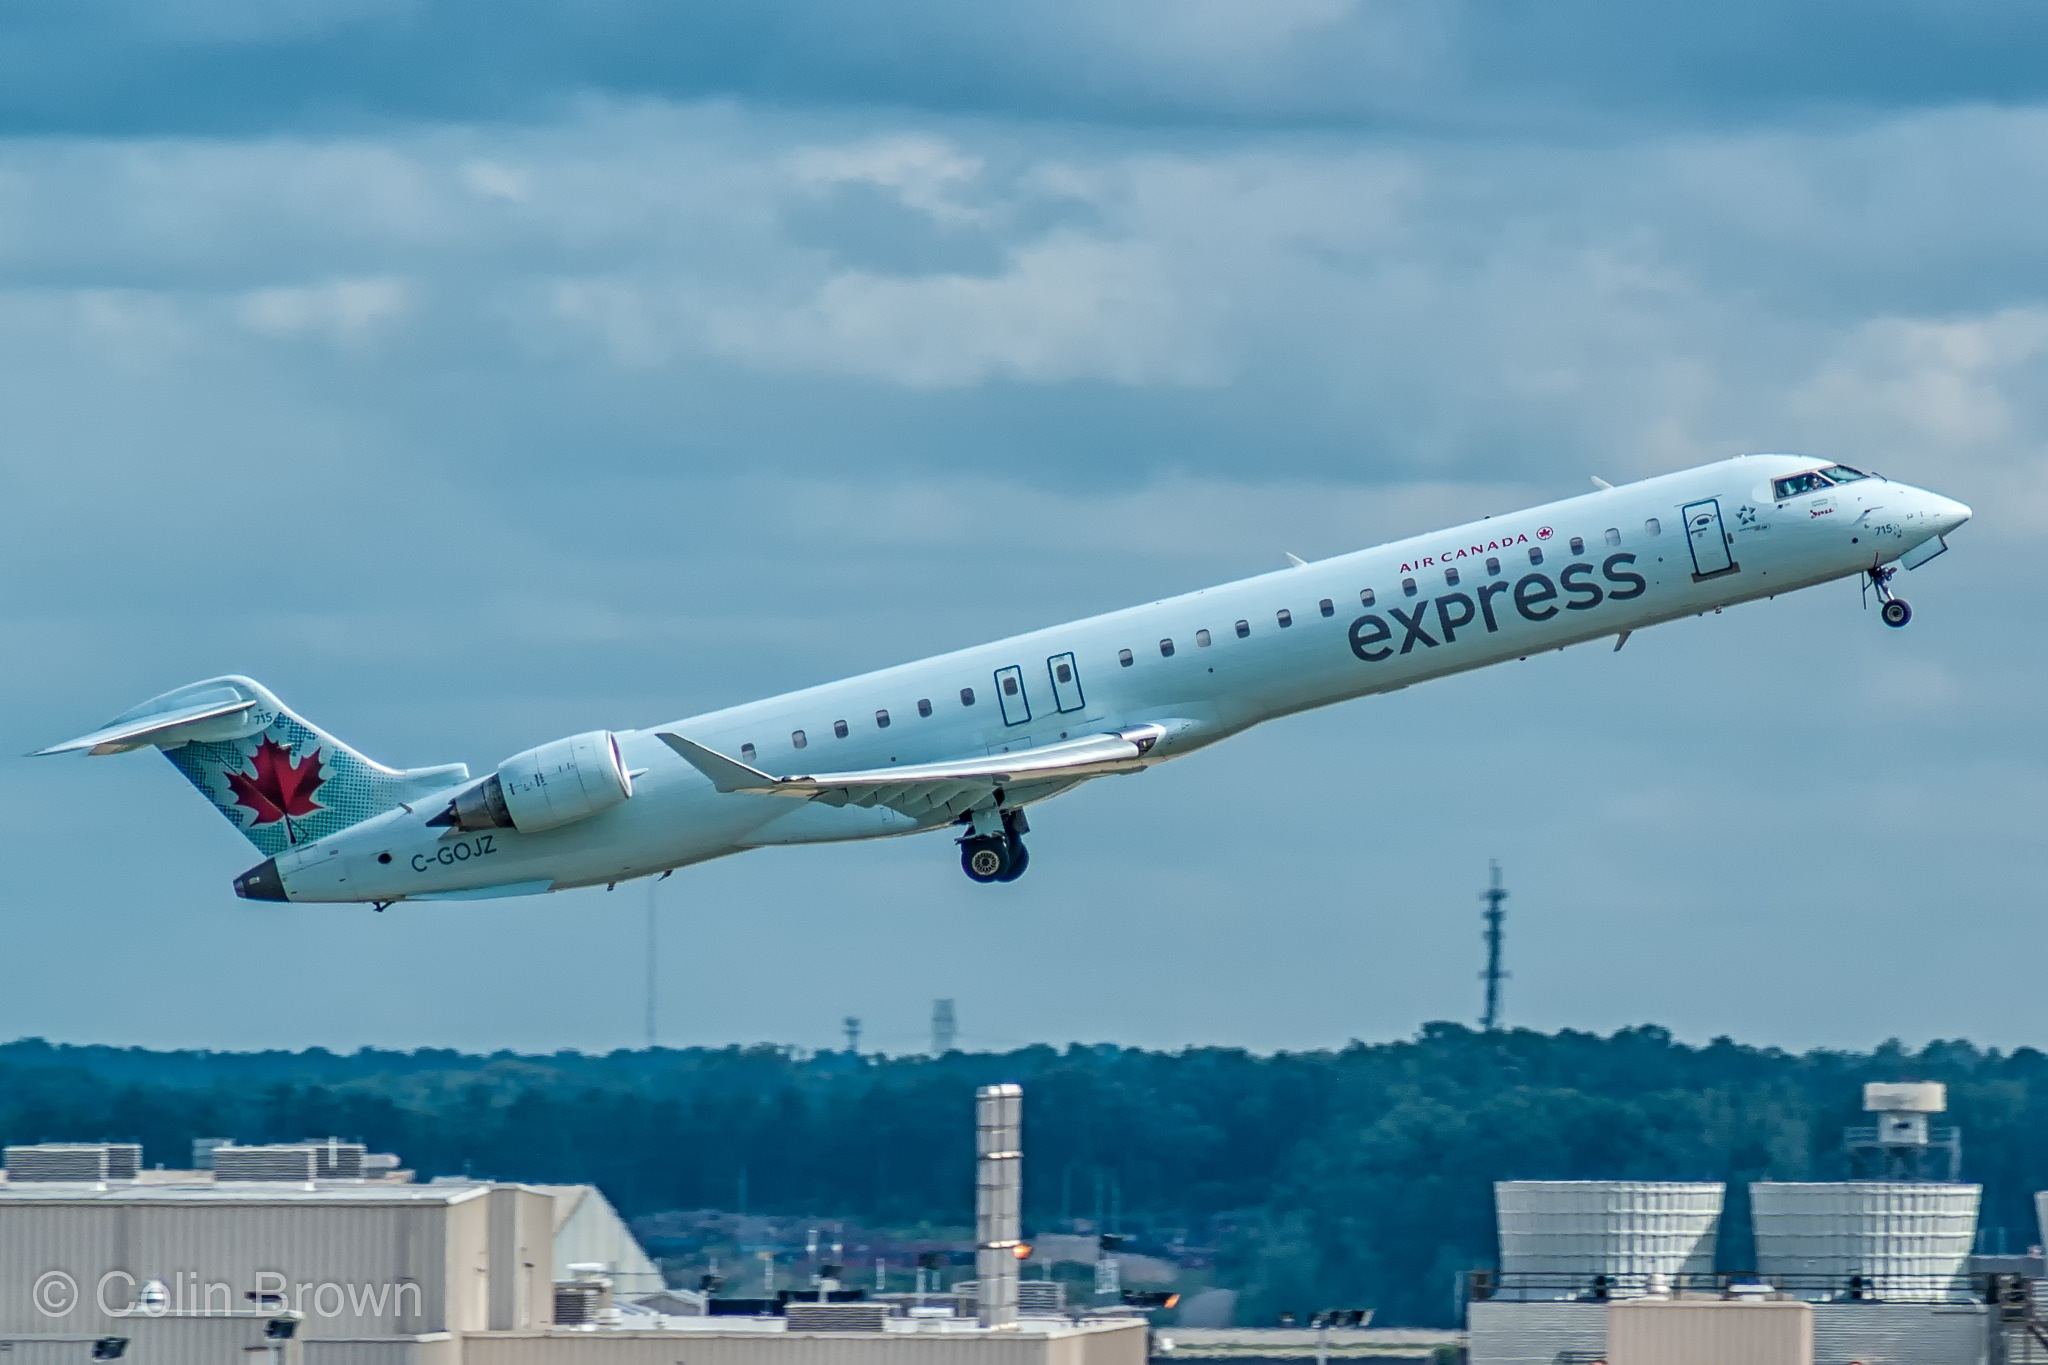 C-GOJZ - Bombardier CRJ-705LR - Air Canada Express (Jazz Aviation) par Colin Brown sous (CC BY-ND 2.0) - https://www.flickr.com/photos/colins-airplane-photos/22584083103/ https://creativecommons.org/licenses/by-nd/2.0/